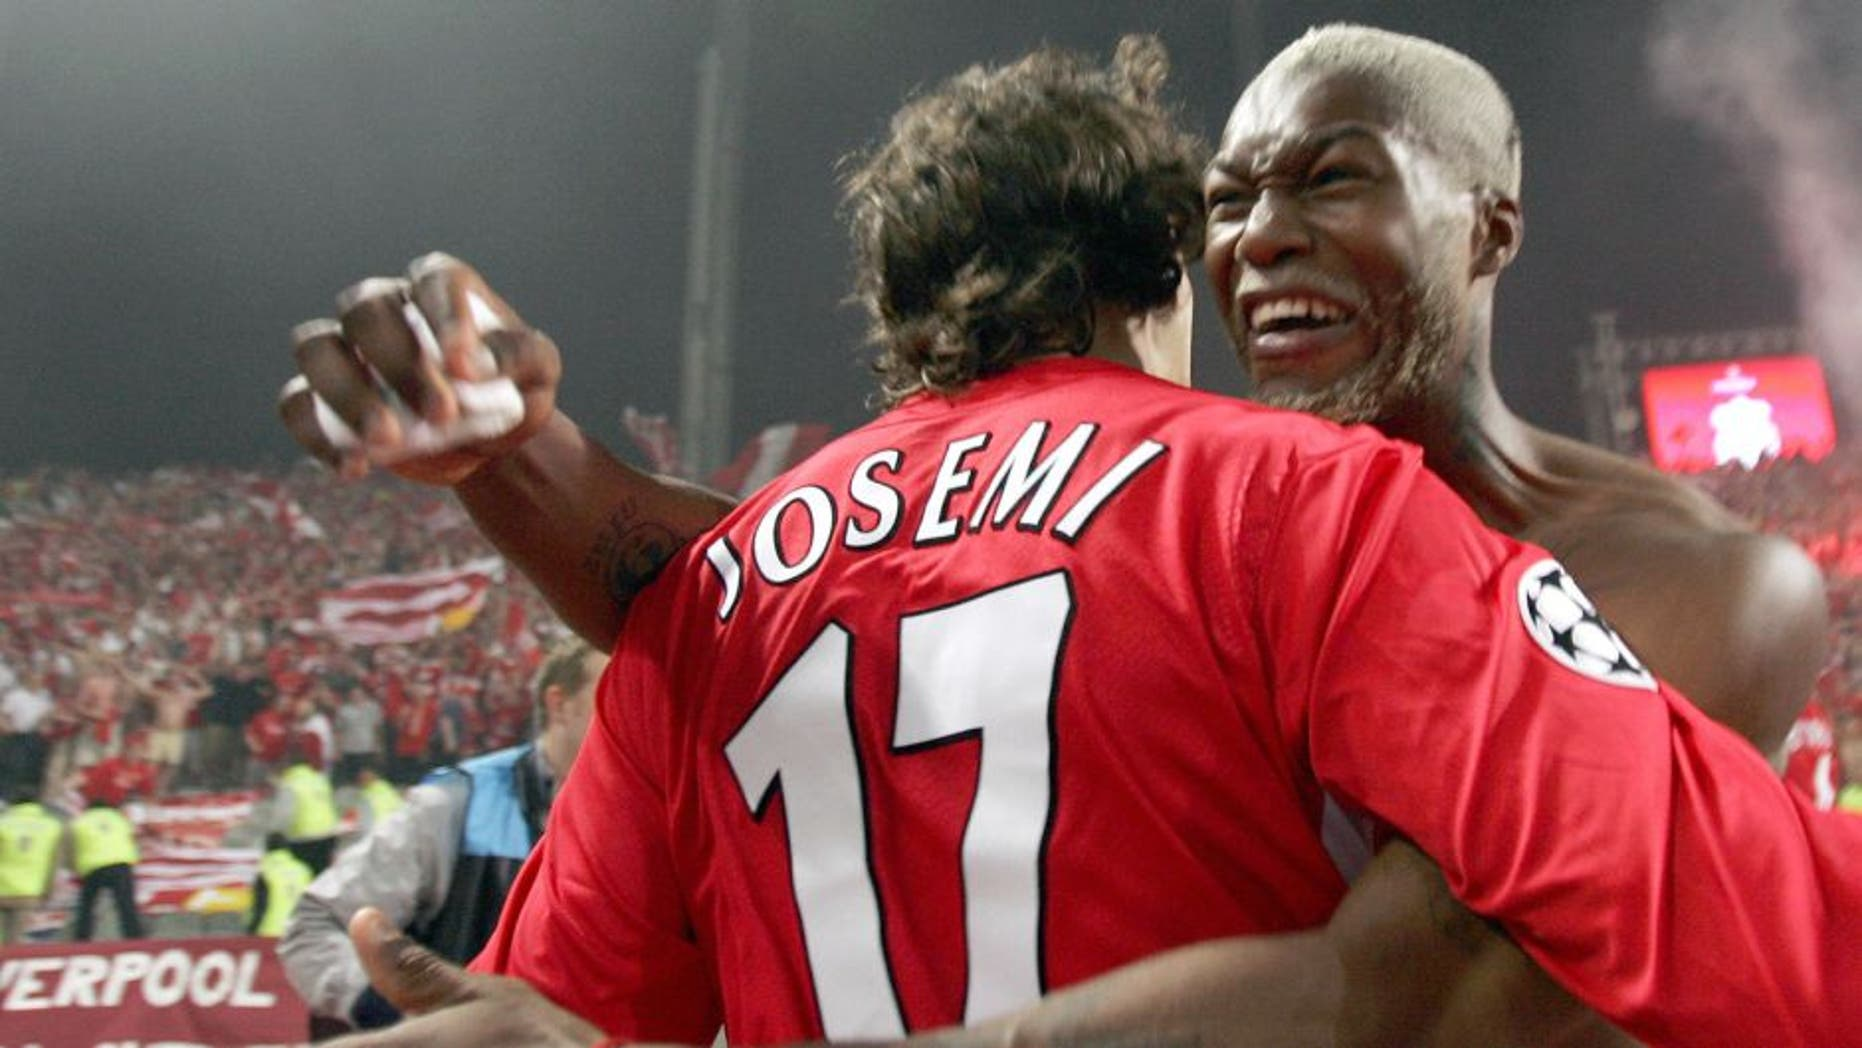 Istanbul, Turkey: Liverpool's Spanish Defender Josemi Jesemi and Liverpool's French striker Djibril Cisse celebrate after winning at the UEFA Champions league football final AC Milan vs Liverpool, 25 May 2005 at the Ataturk Stadium in Istanbul. Liverpool won 3-2 on penalties. AFP PHOTO FILIPPO MONTEFORTE (Photo credit should read FILIPPO MONTEFORTE/AFP/Getty Images)